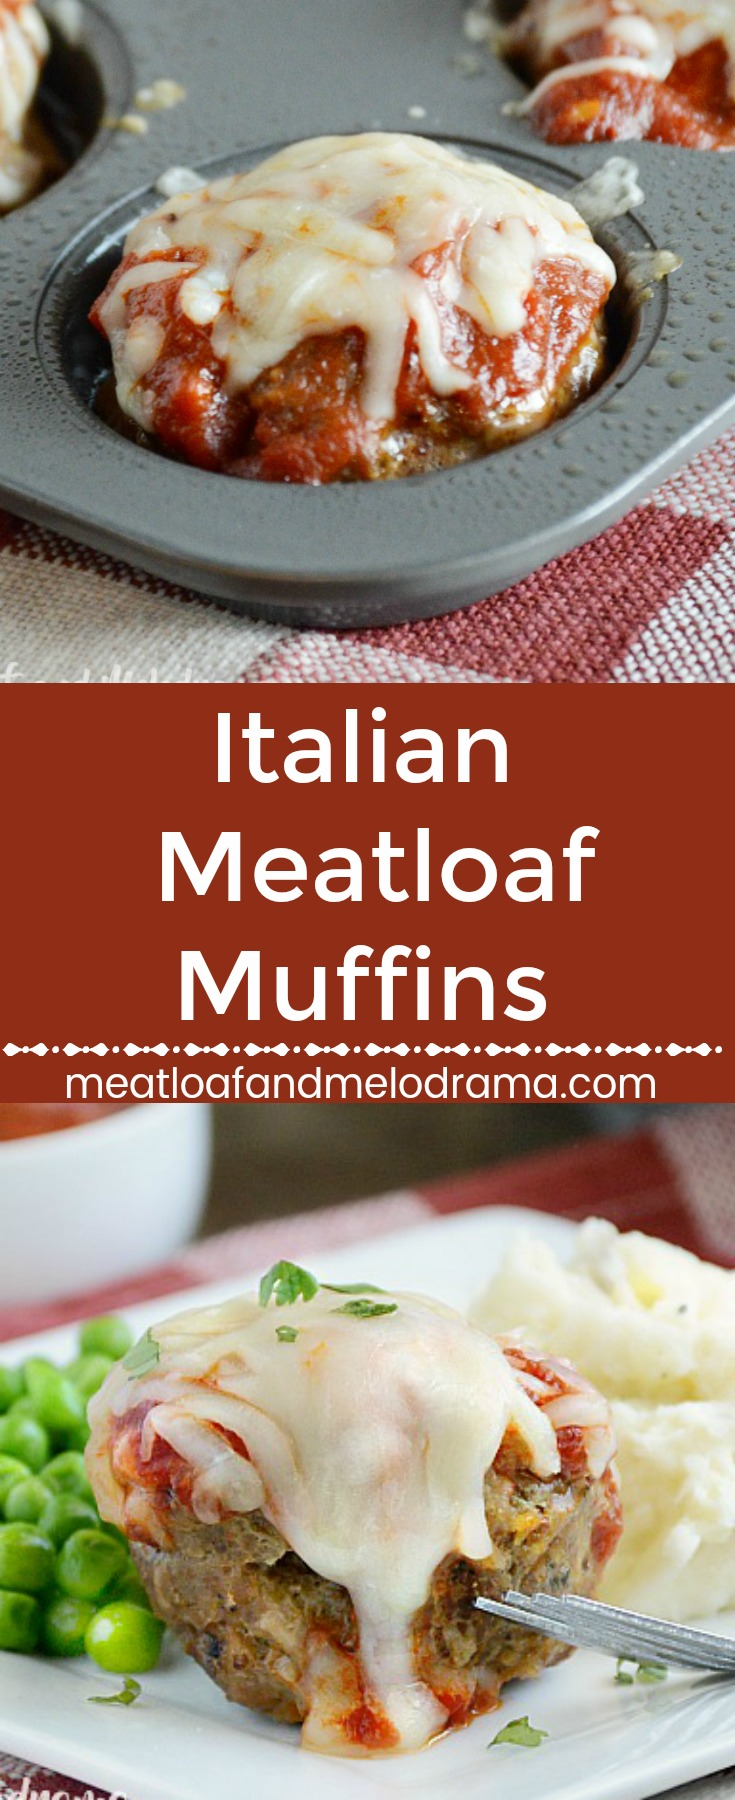 Italian Meatloaf Muffins